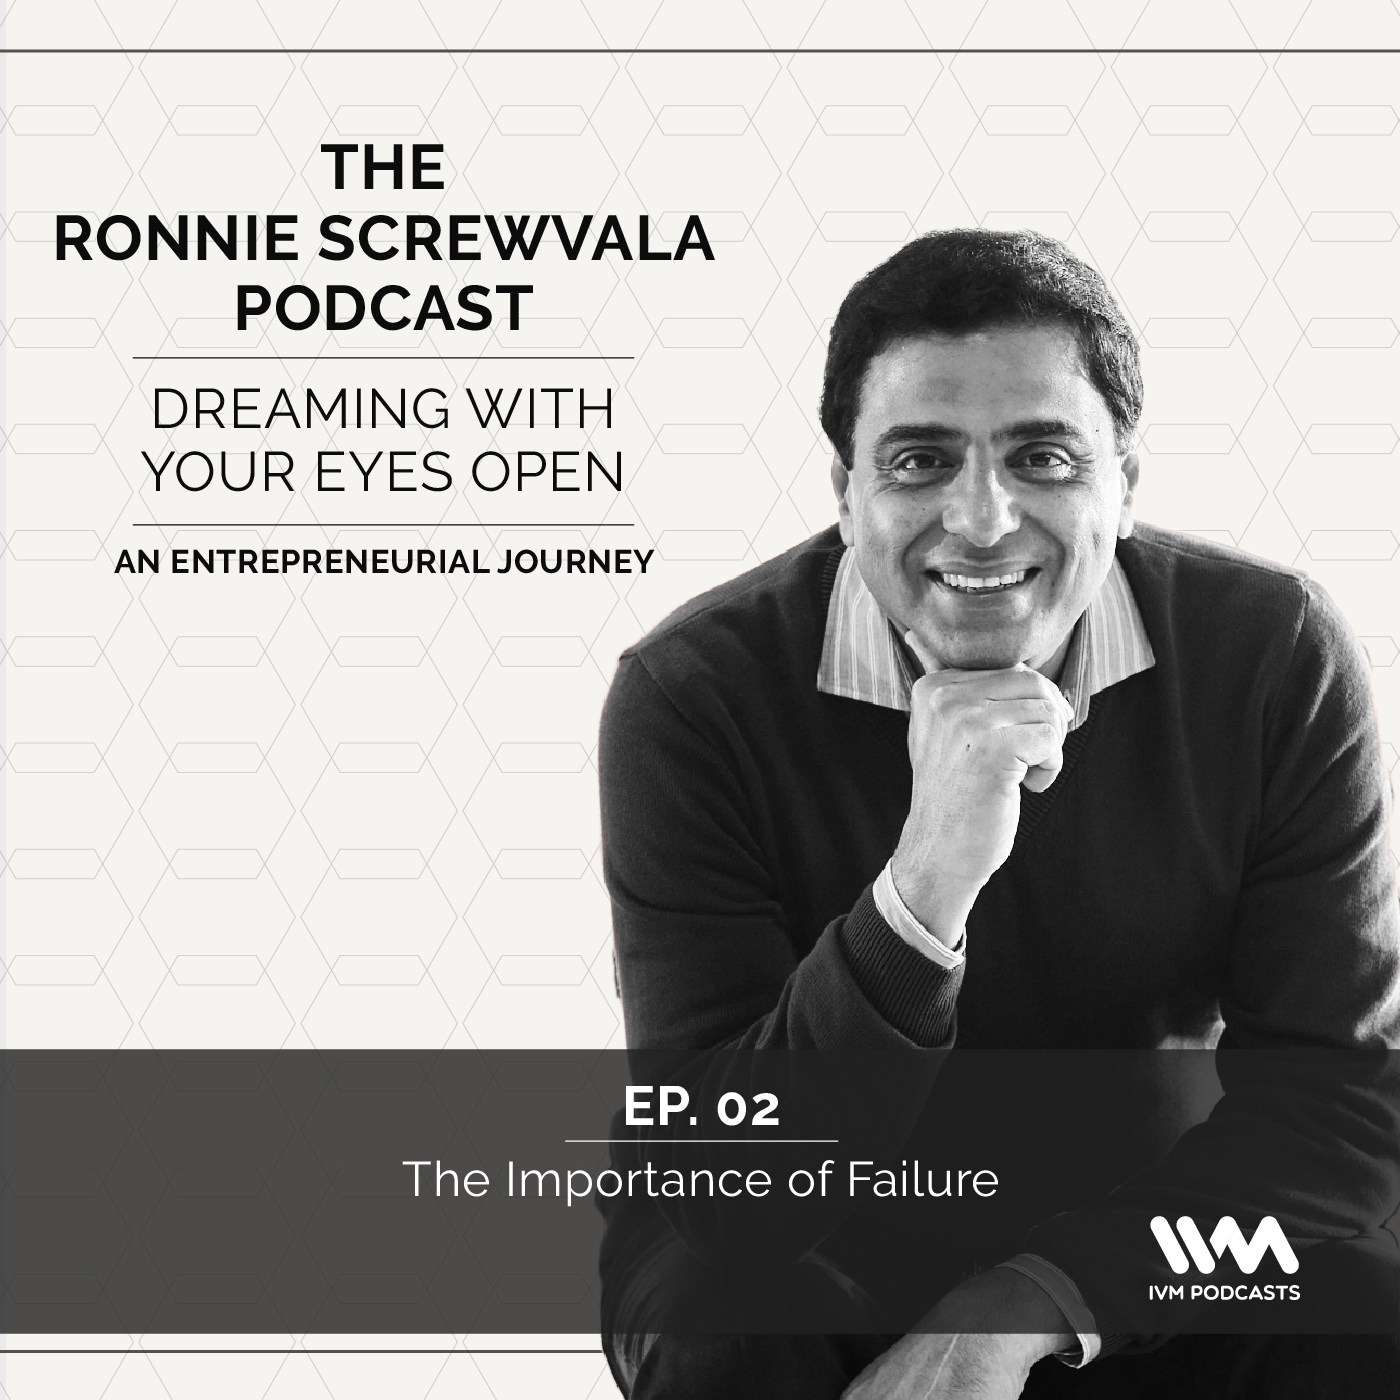 Ep. 02: The Importance of Failure